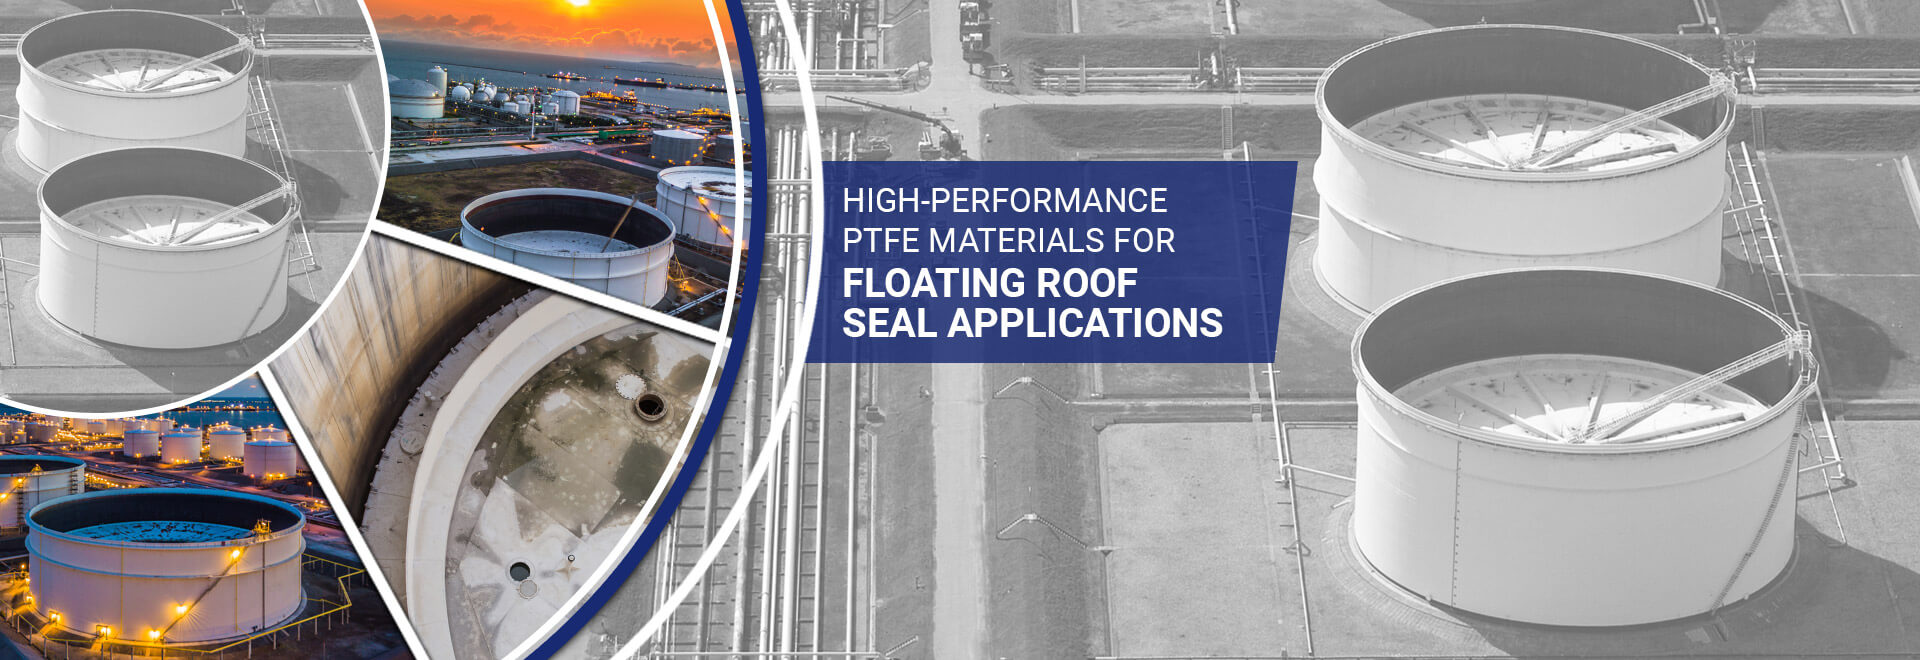 ptfe tank sealing materials, floating roof seal, wiper seal, crossfilm, tank liner, ptfe/fiberglass materials, ptfe fiberglass, vapor barriers, tank seals, wiper tips, ptfe leg socks